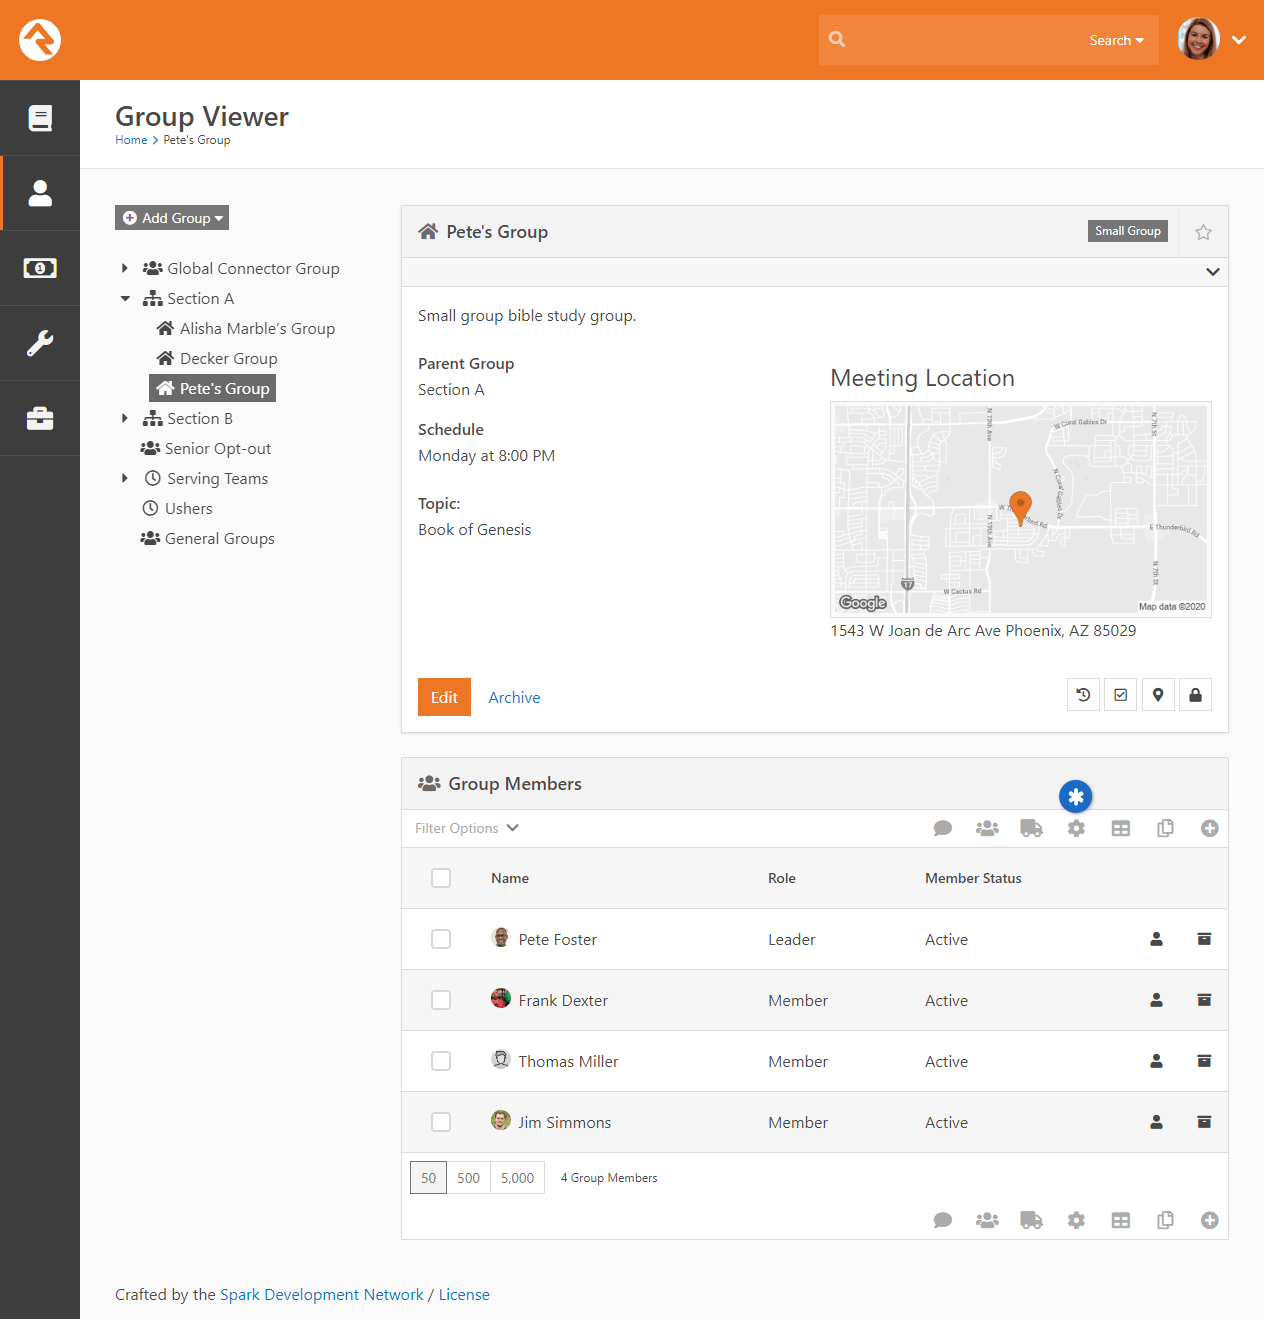 Launch Workflow From Grid - Group Viewer